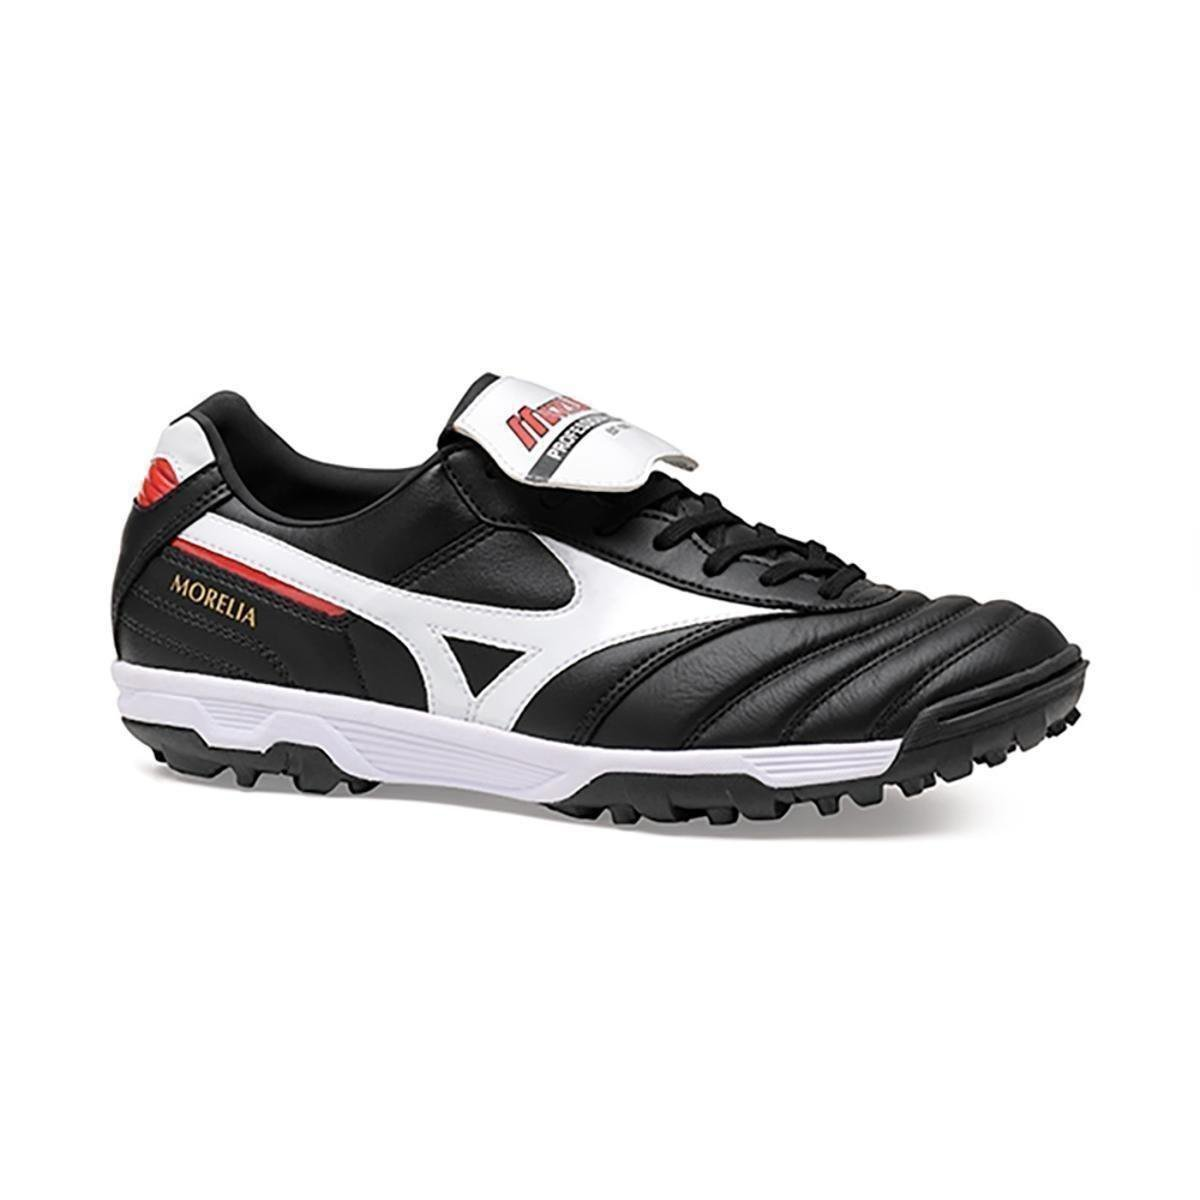 d23044e2cd Chuteira Society Mizuno Morelia Elite As Ii Pro - Preto e Branco ...